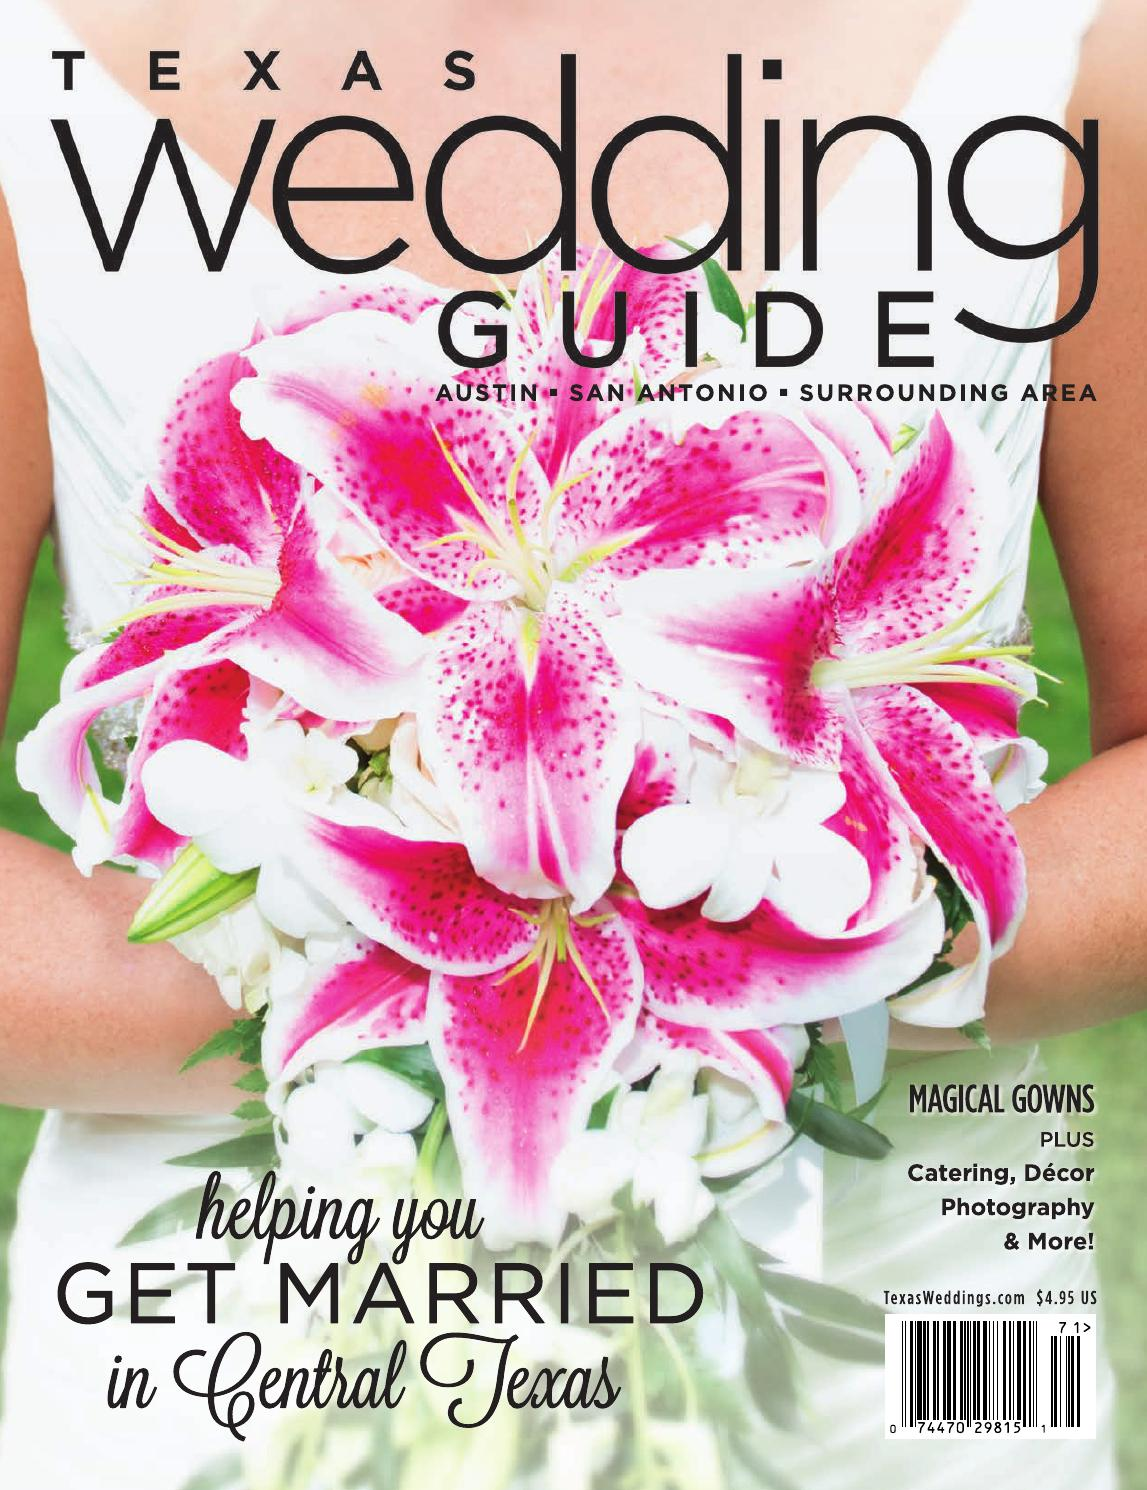 Texas Wedding Guide Spring 2017 by Texas Wedding Guide - issuu